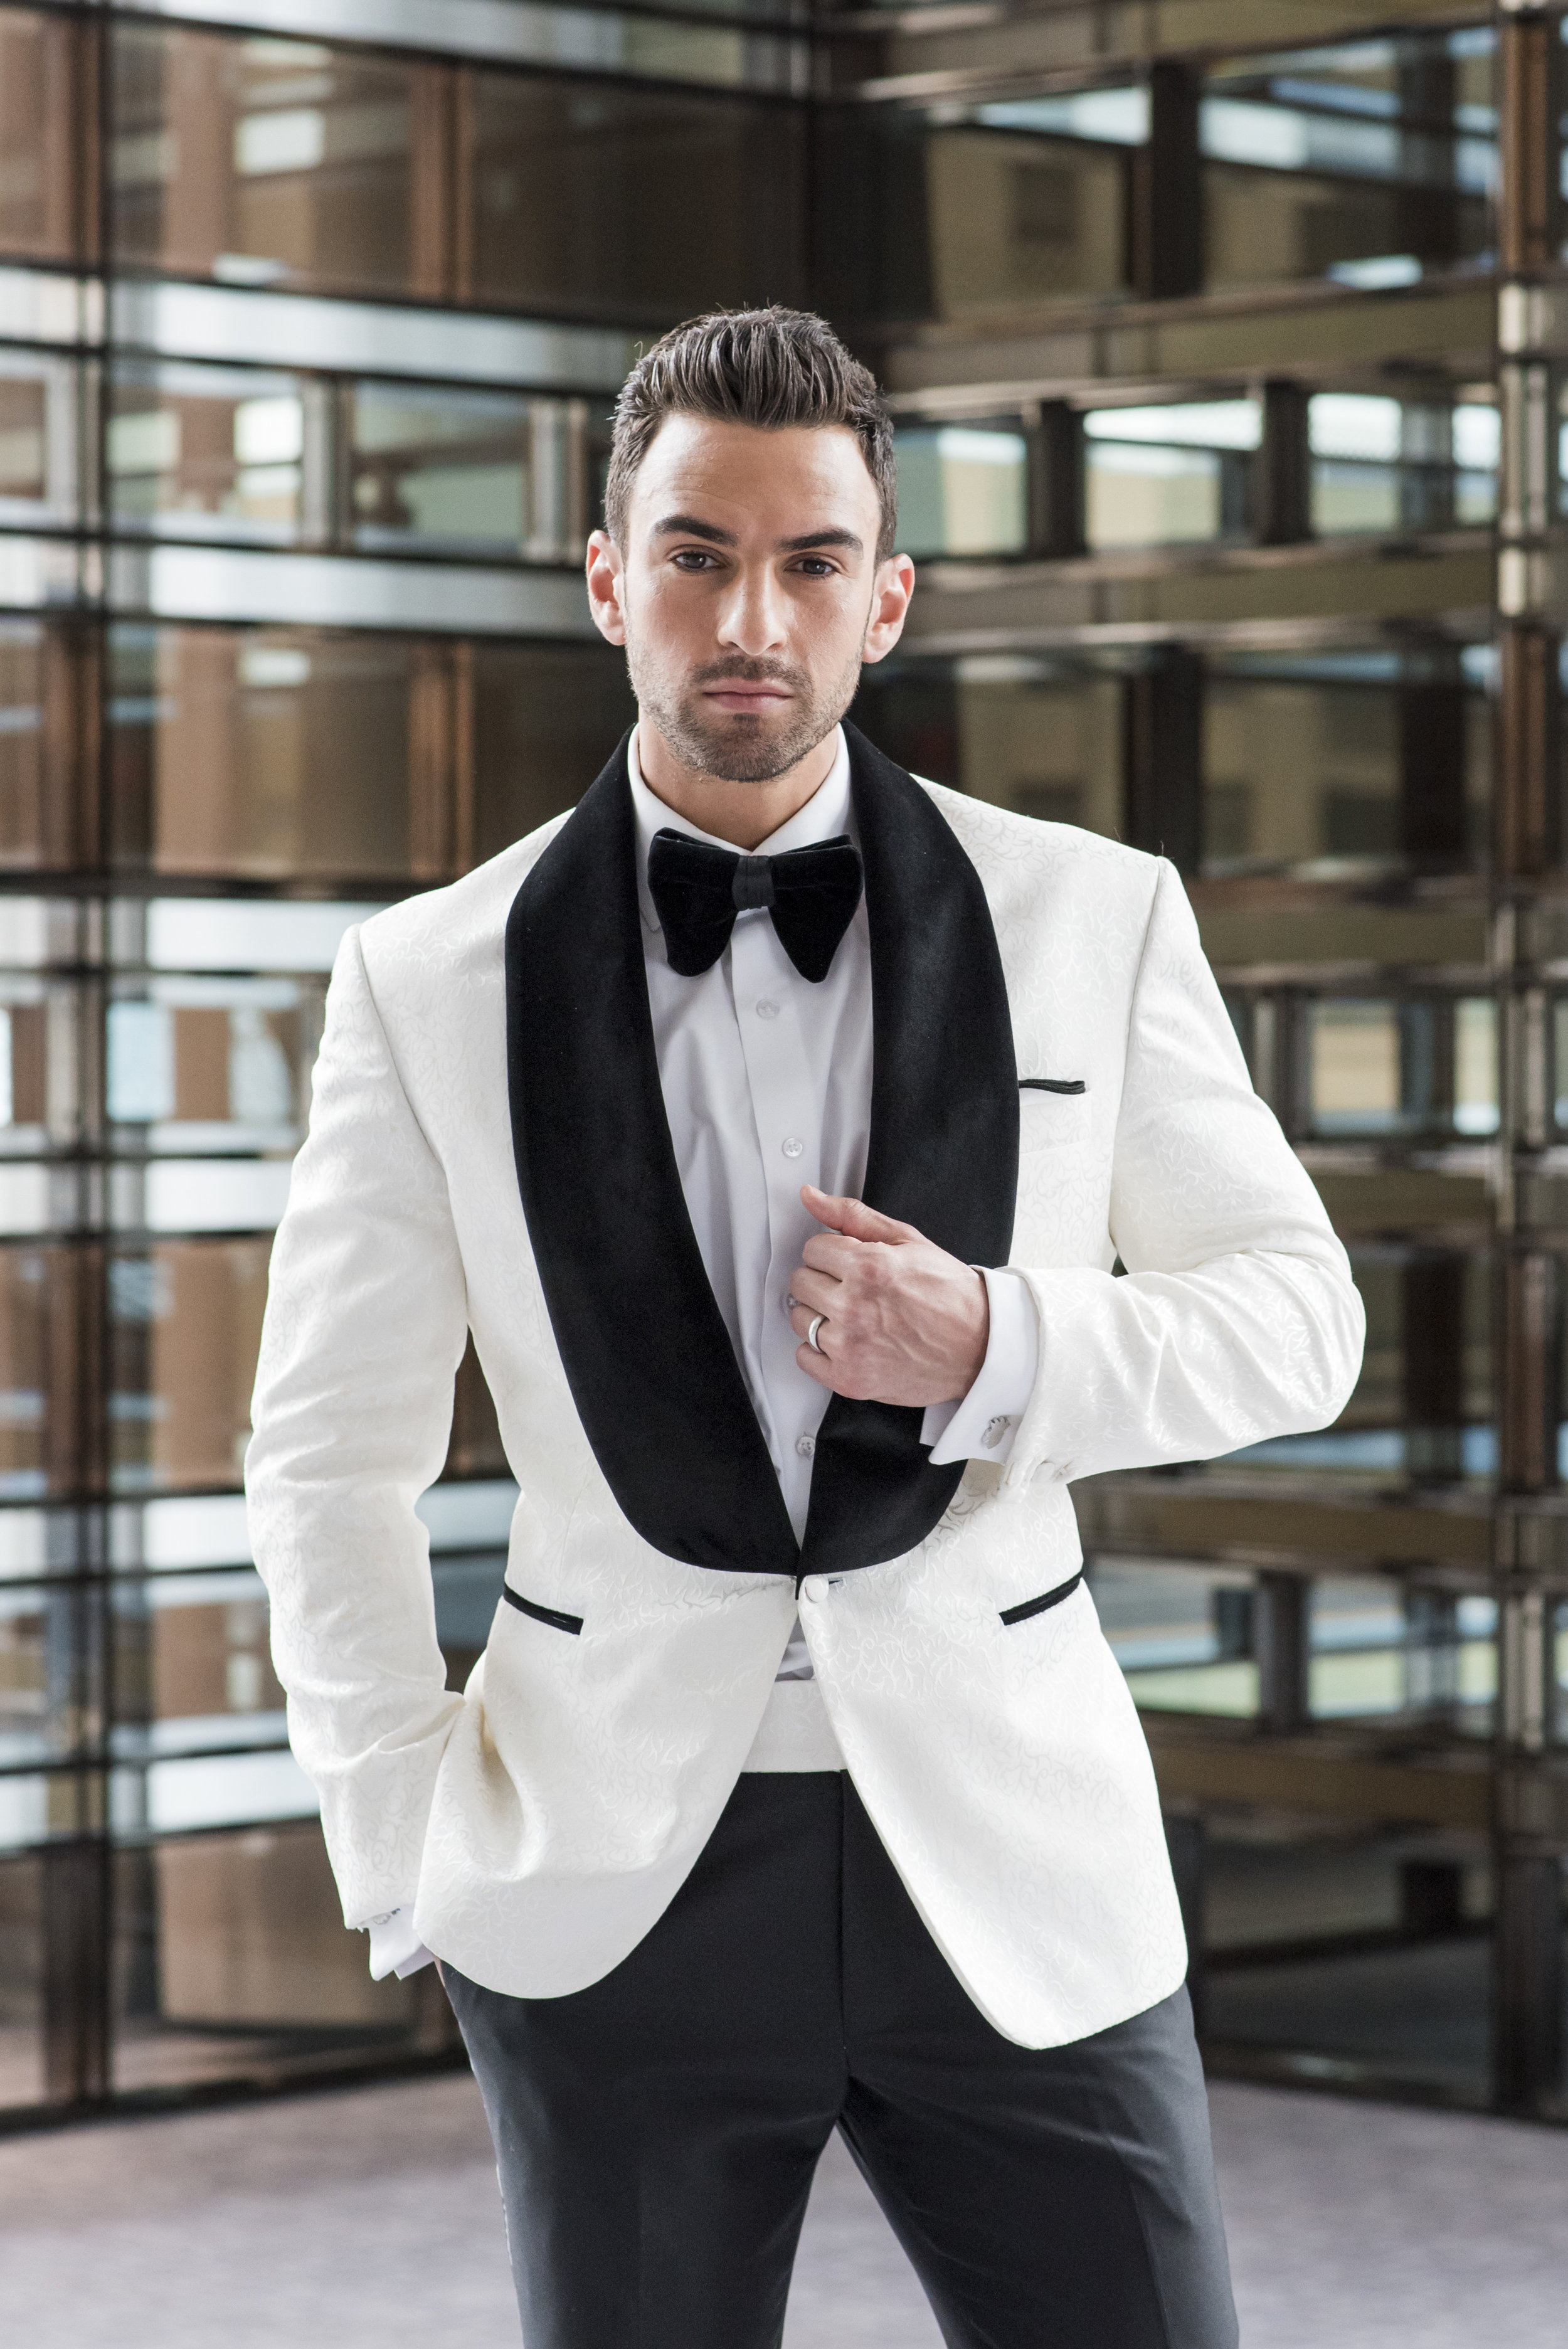 August In Bloom - Groom in White and black suit - The Suited Groom (The Bridal Affair)